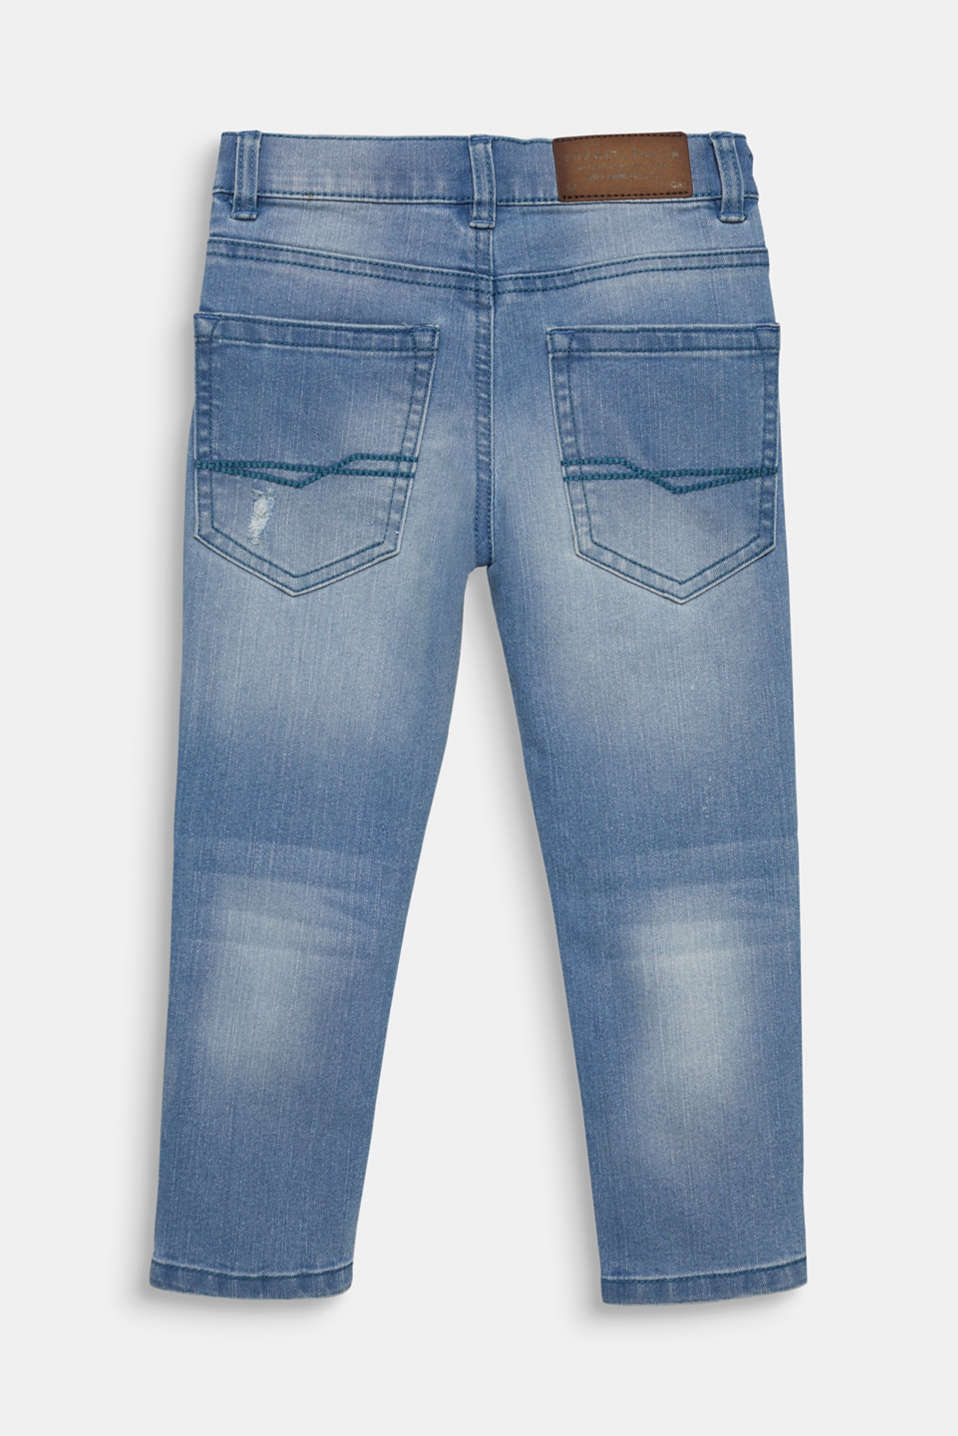 Tapered-Fit Jeans with vintage details, adjustable waistband, LIGHT INDIGO D, detail image number 1